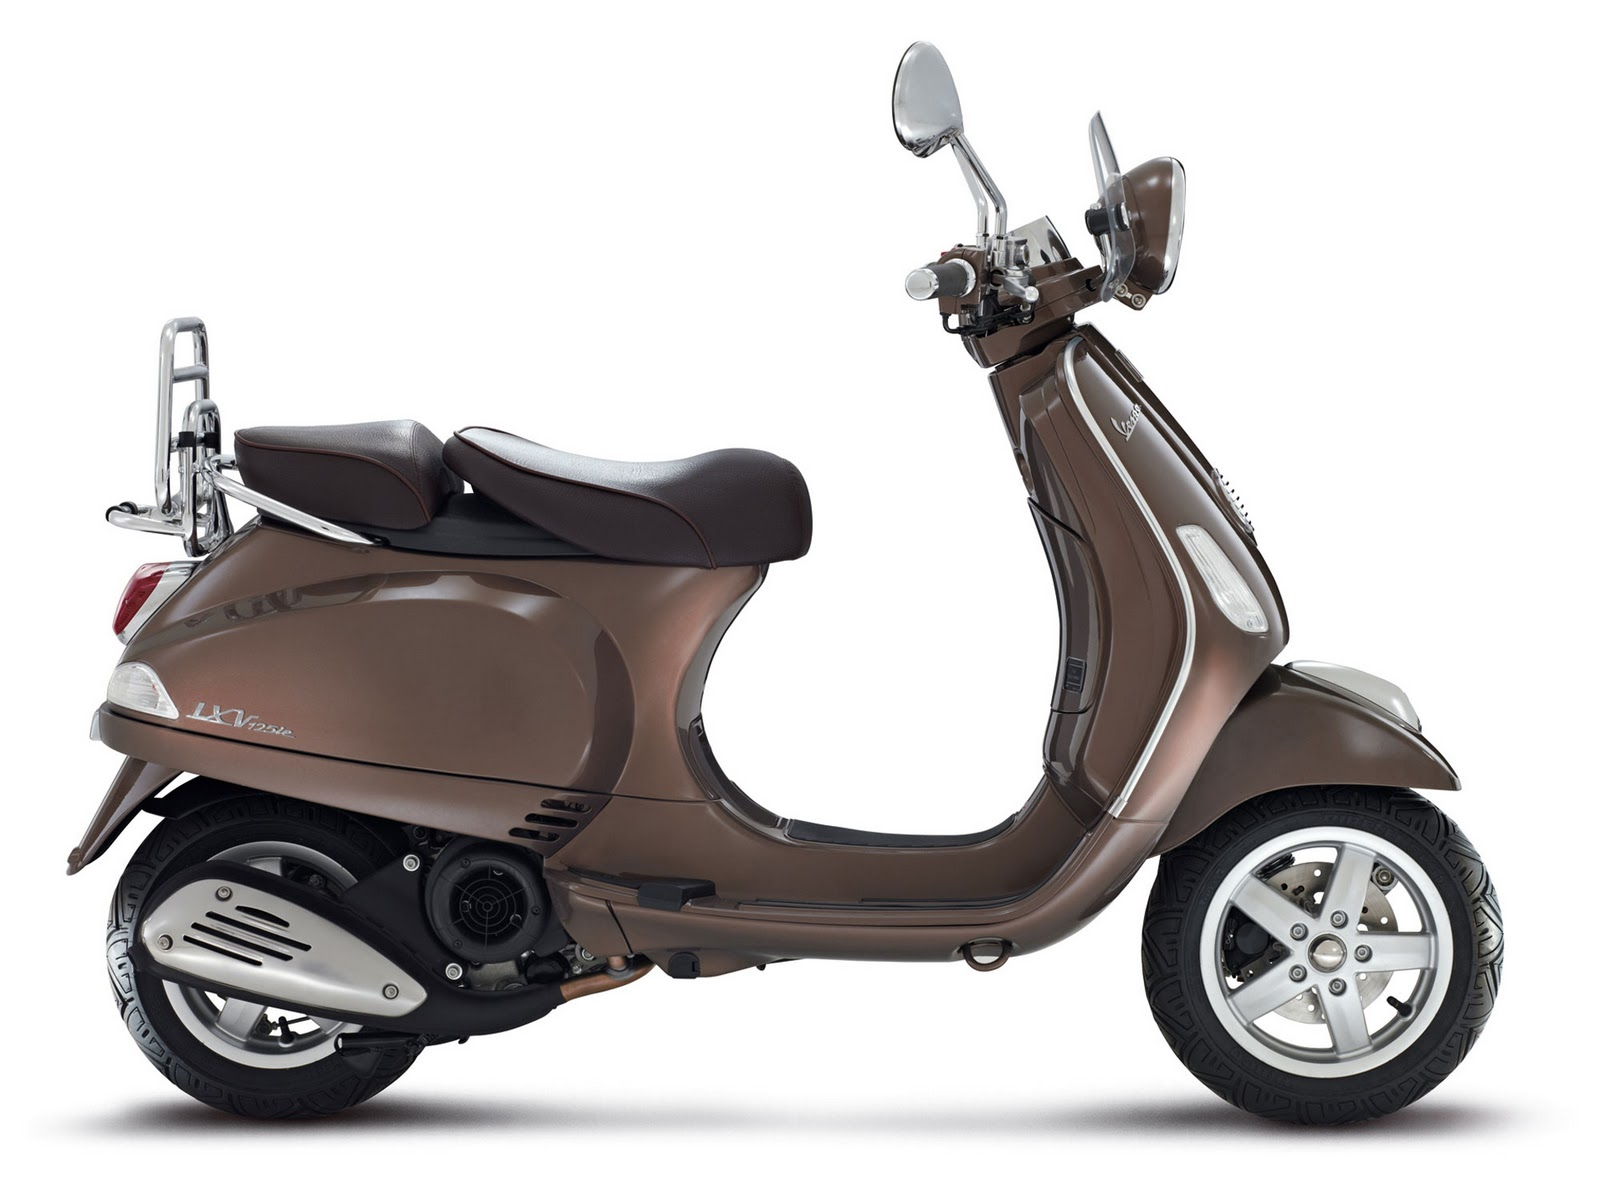 vespa pictures vespa gts touring 300 2012. Black Bedroom Furniture Sets. Home Design Ideas